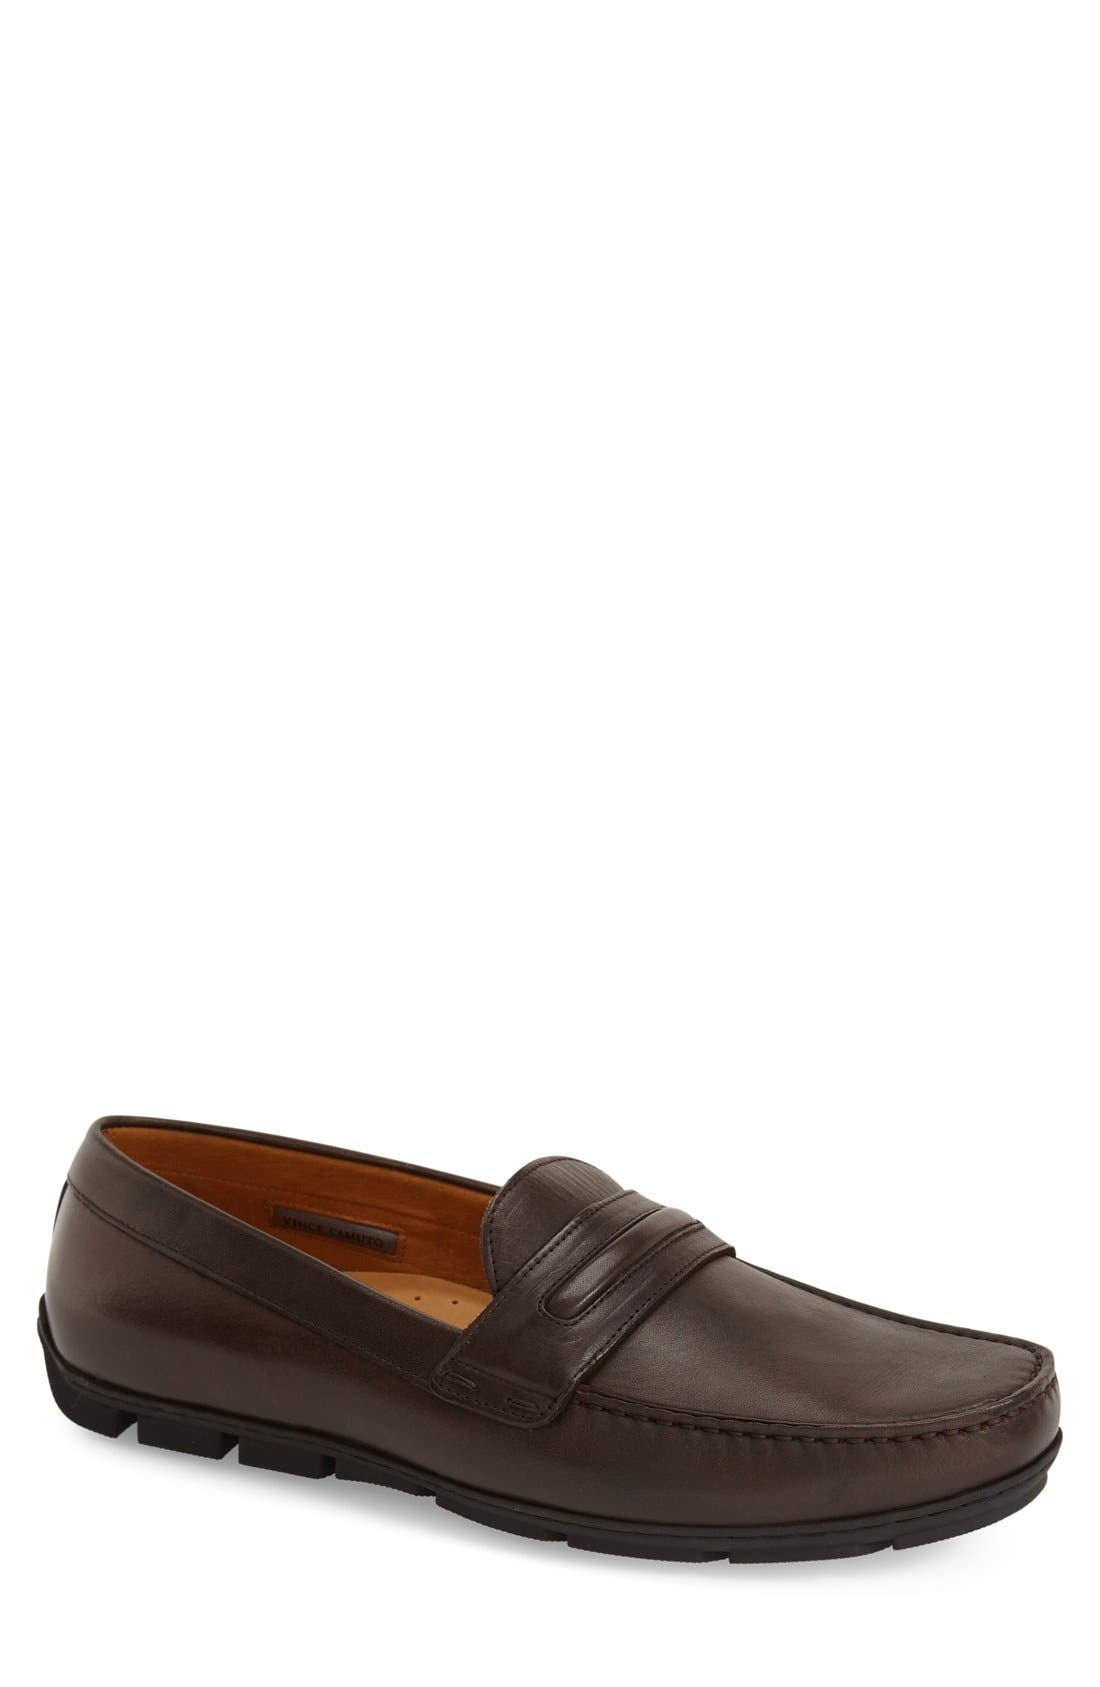 'Donte' Driving Shoe,                             Main thumbnail 1, color,                             Espresso Leather